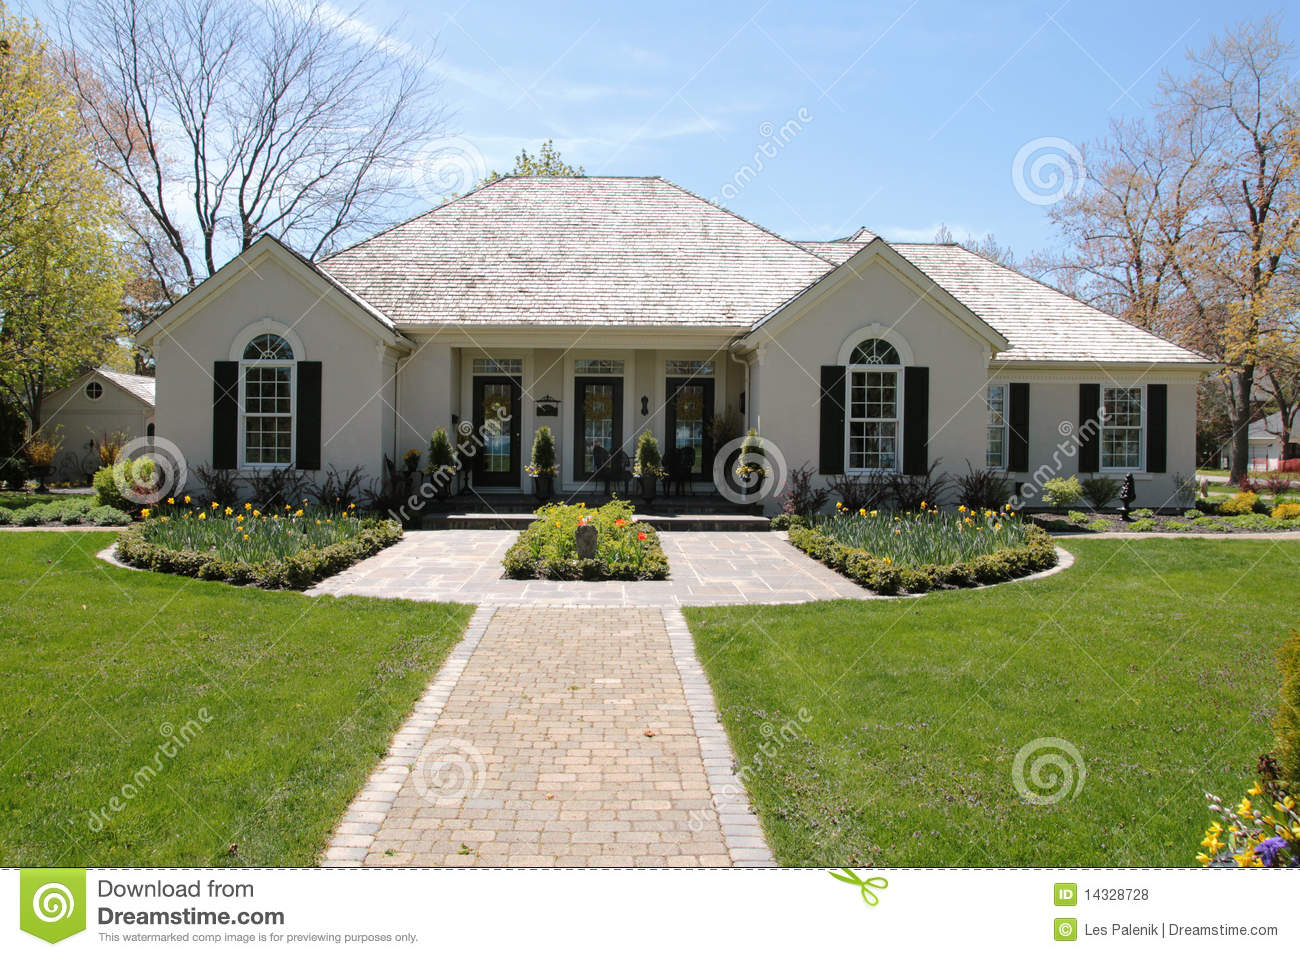 Nice house with symmetrical landscaping stock photo for Nice home image